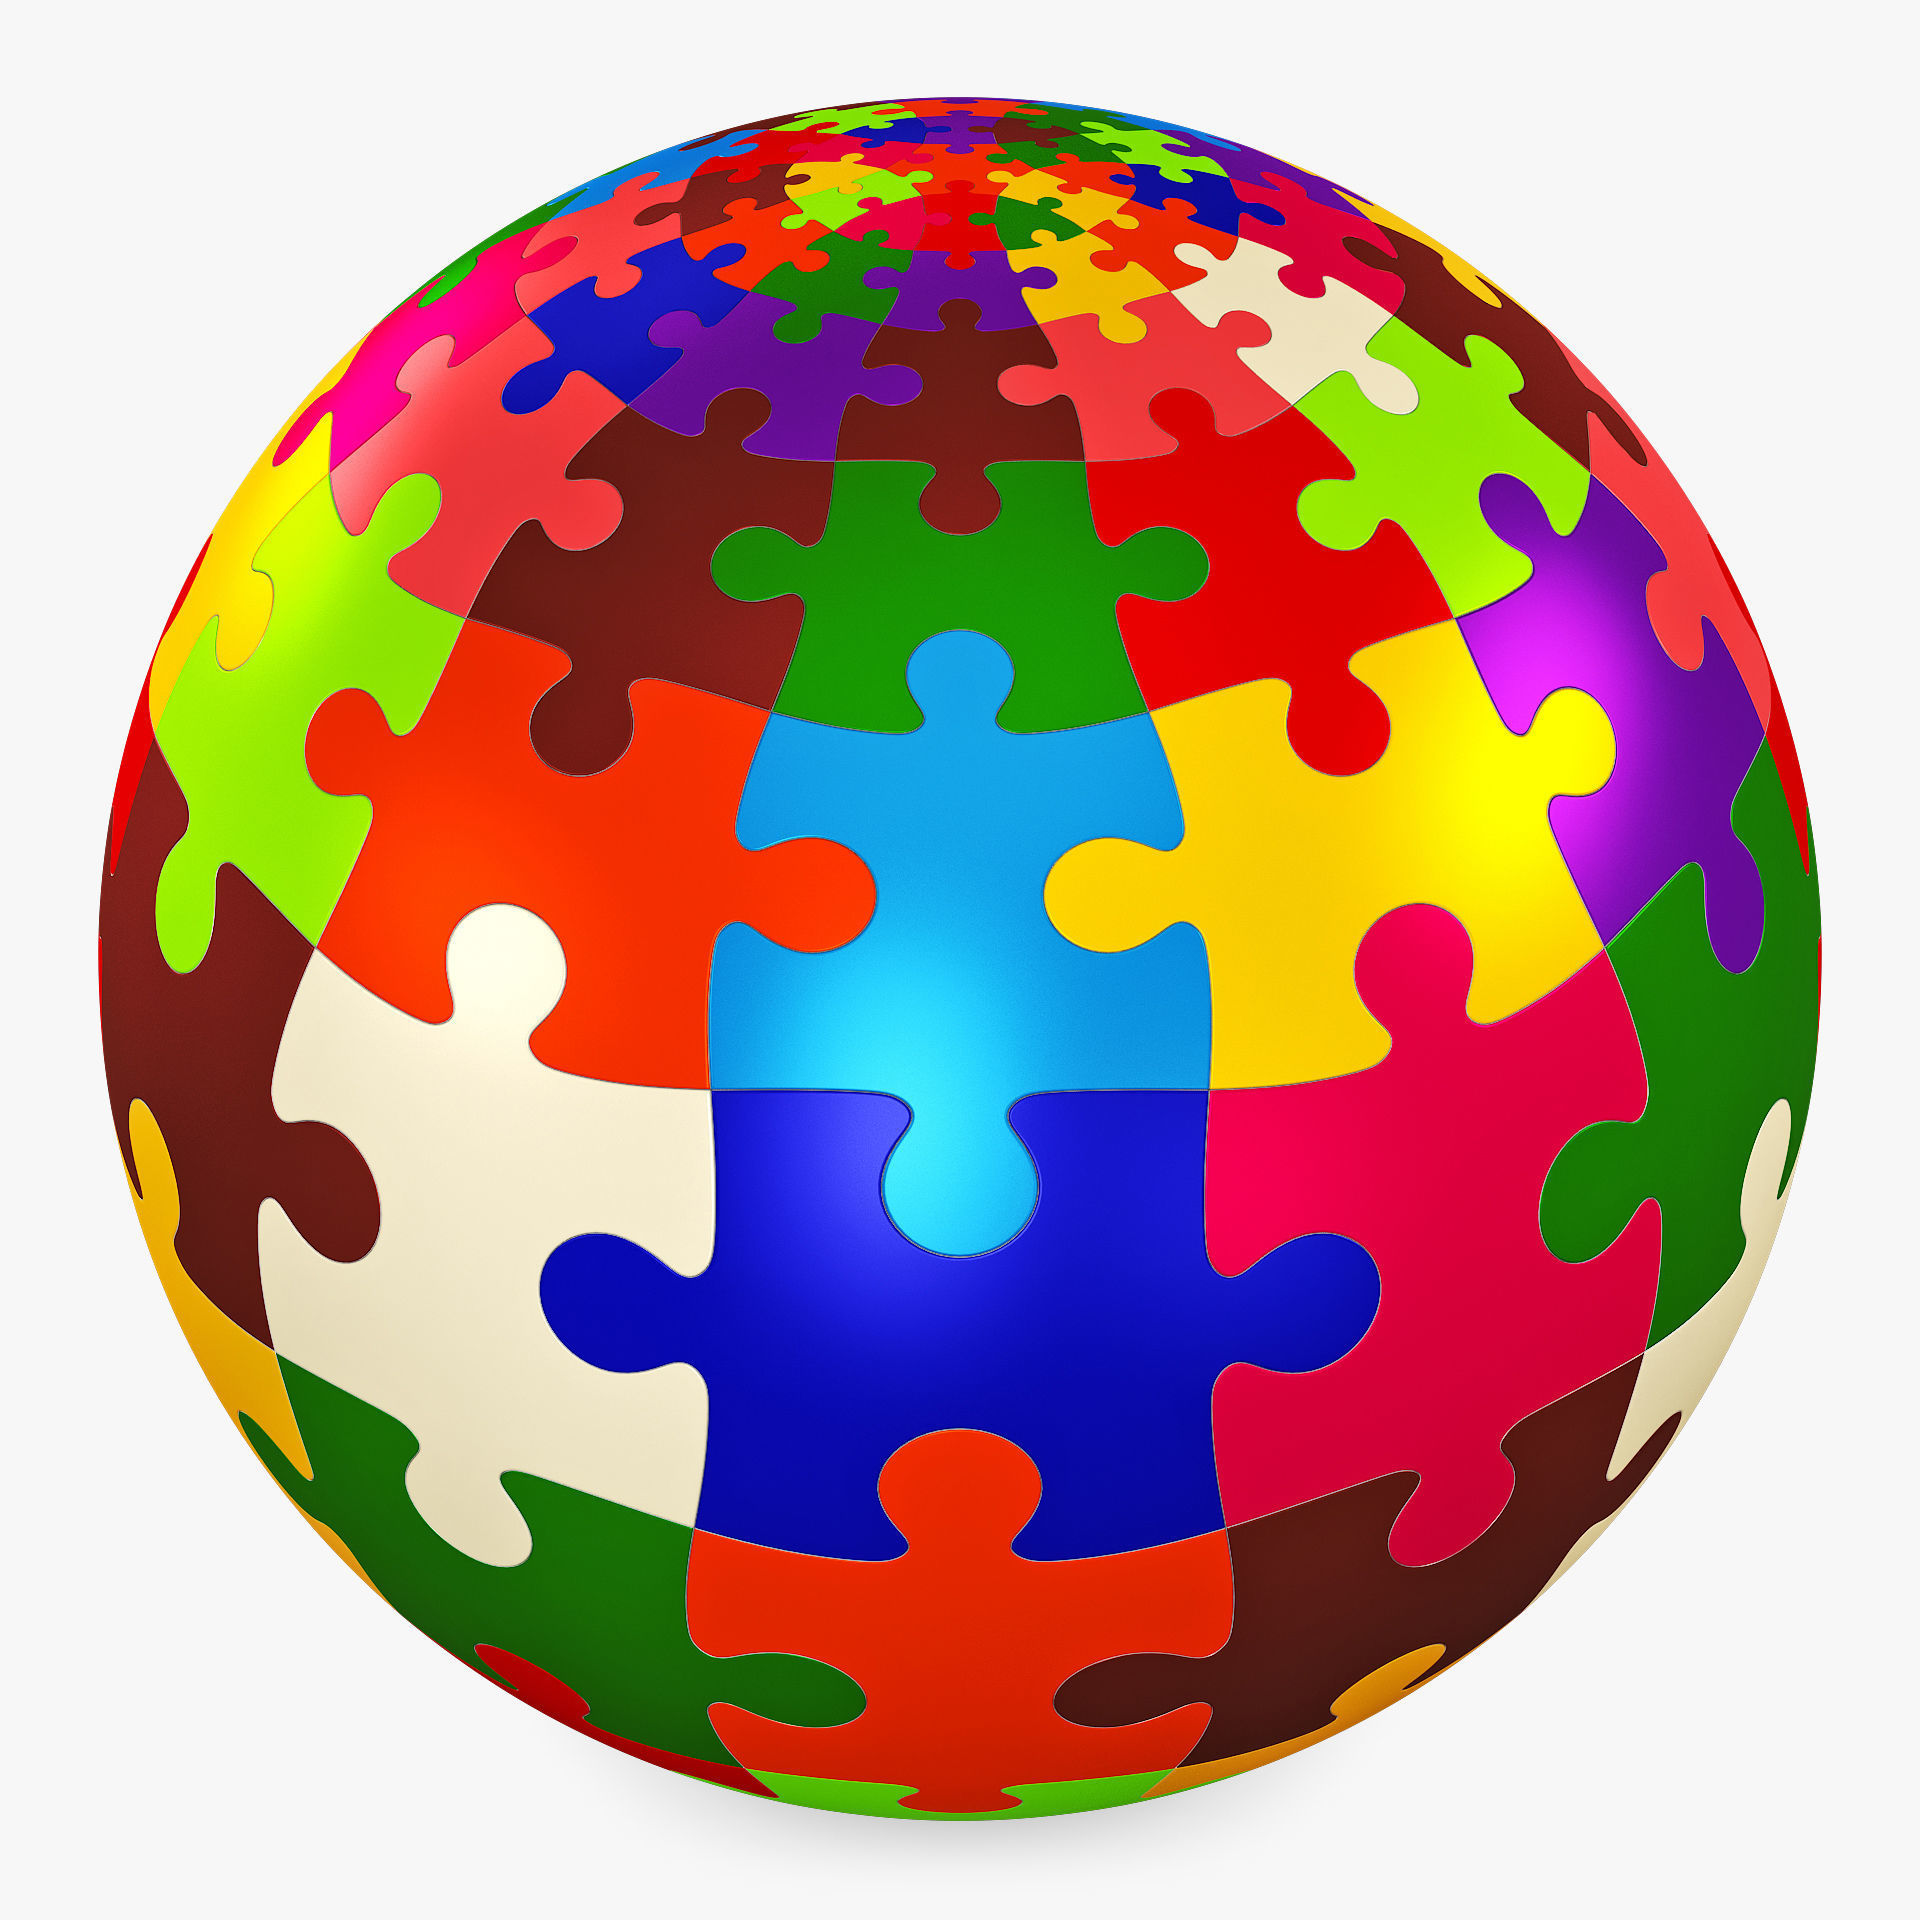 Colored Sphere Puzzle v 1